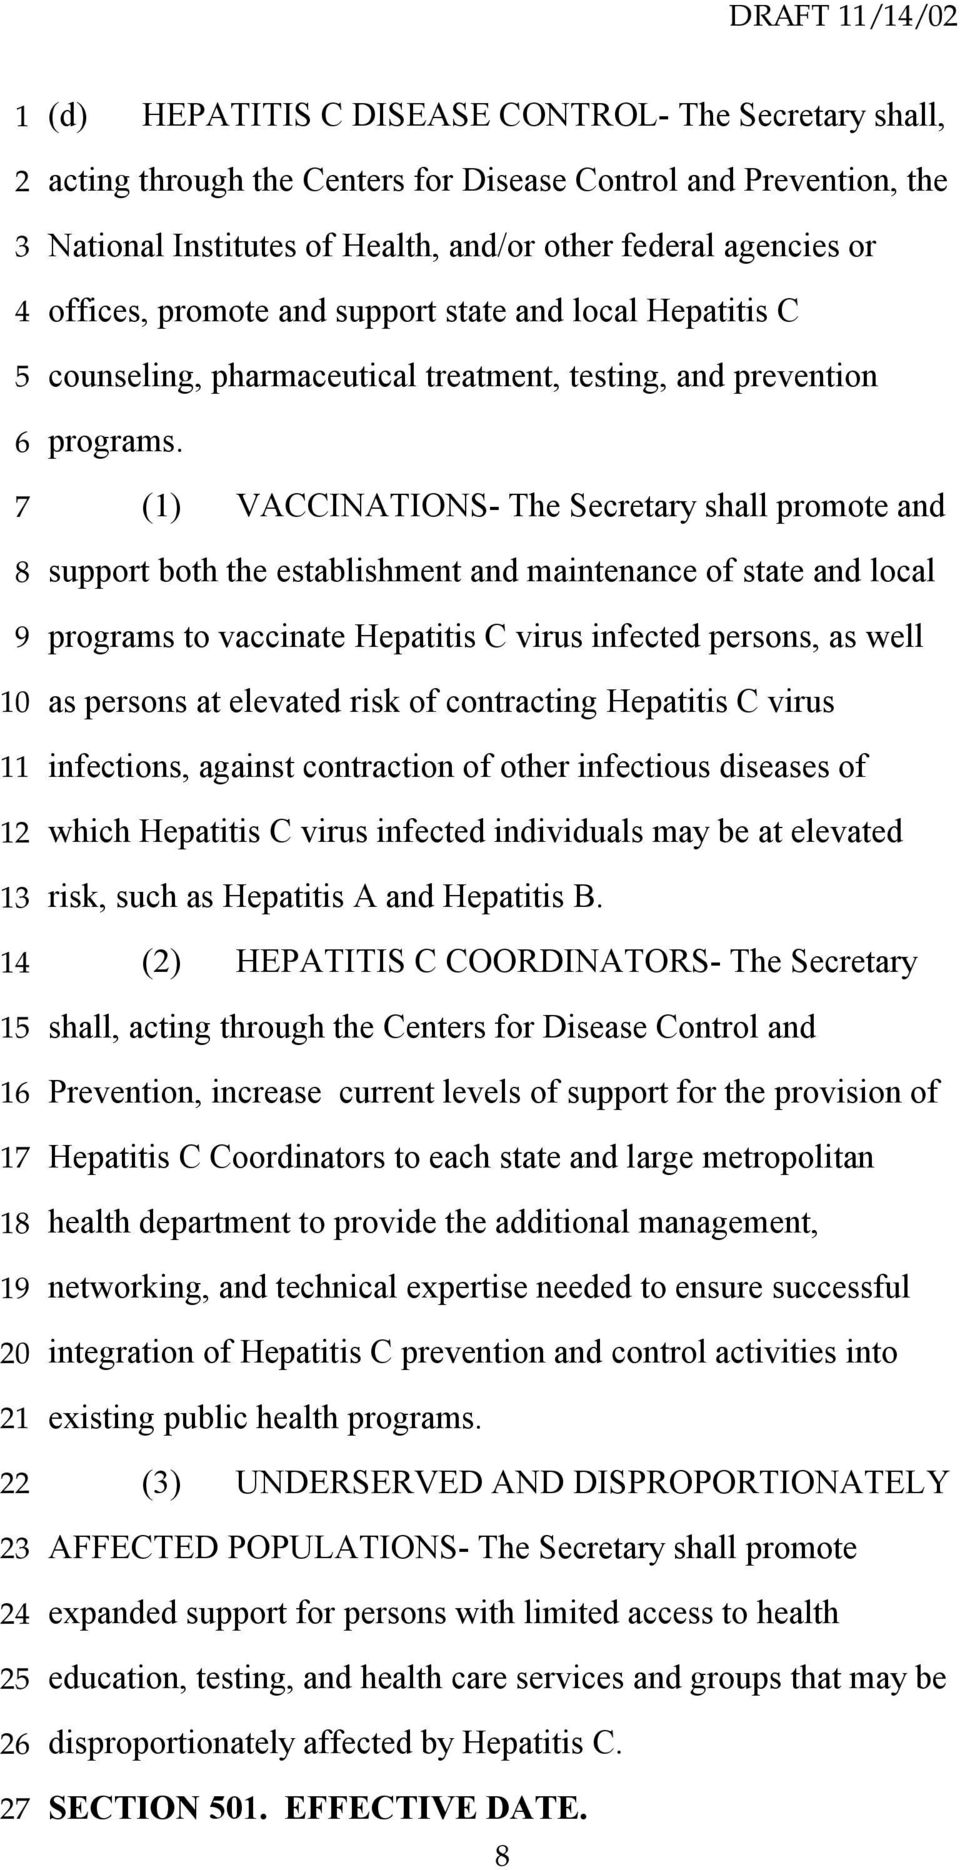 () VACCINATIONS- The Secretary shall promote and support both the establishment and maintenance of state and local programs to vaccinate Hepatitis C virus infected persons, as well as persons at